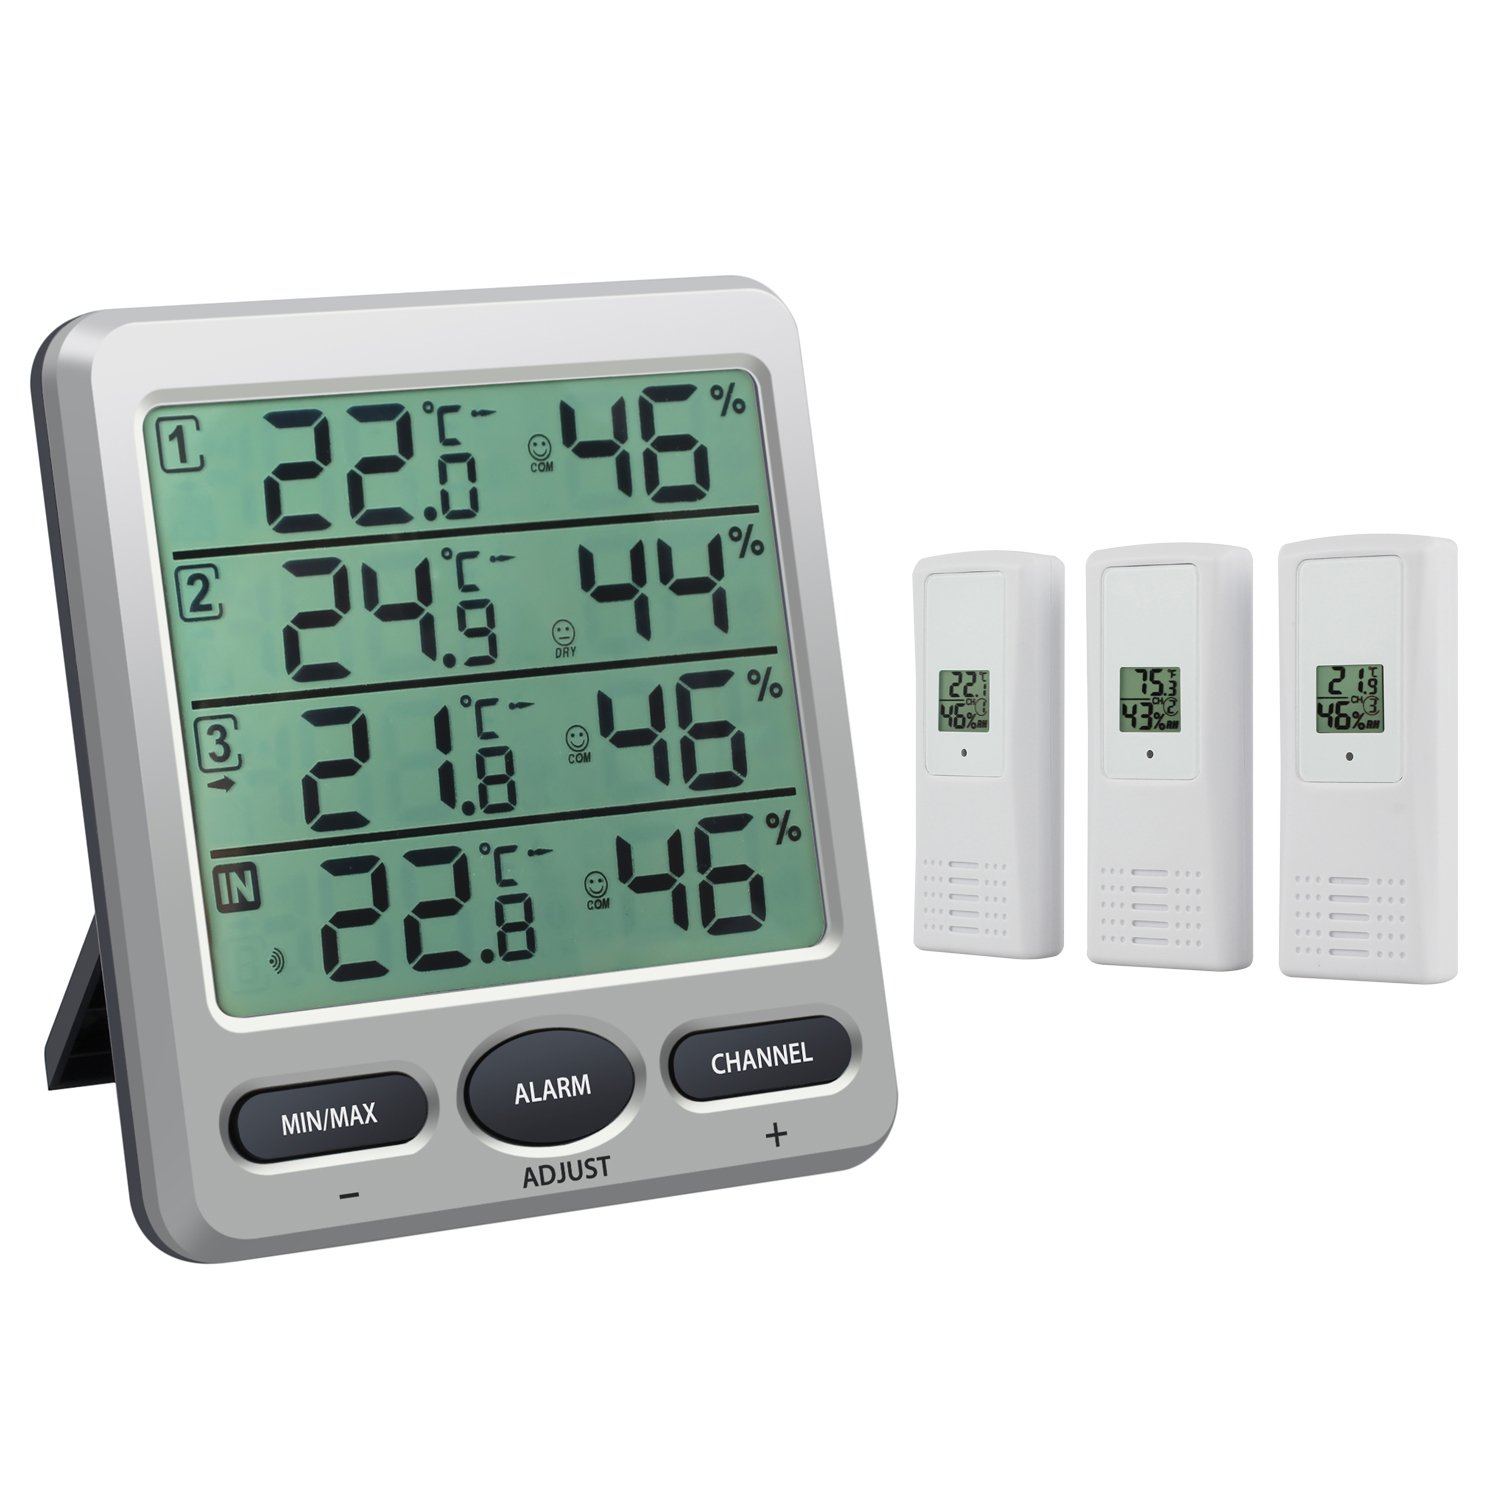 Lcd Wireless Electronic Clock Thermometer Digital Desktop Table Clock Outdoor Indoor Temperature Measure With High Resolution Measurement & Analysis Instruments Temperature Instruments